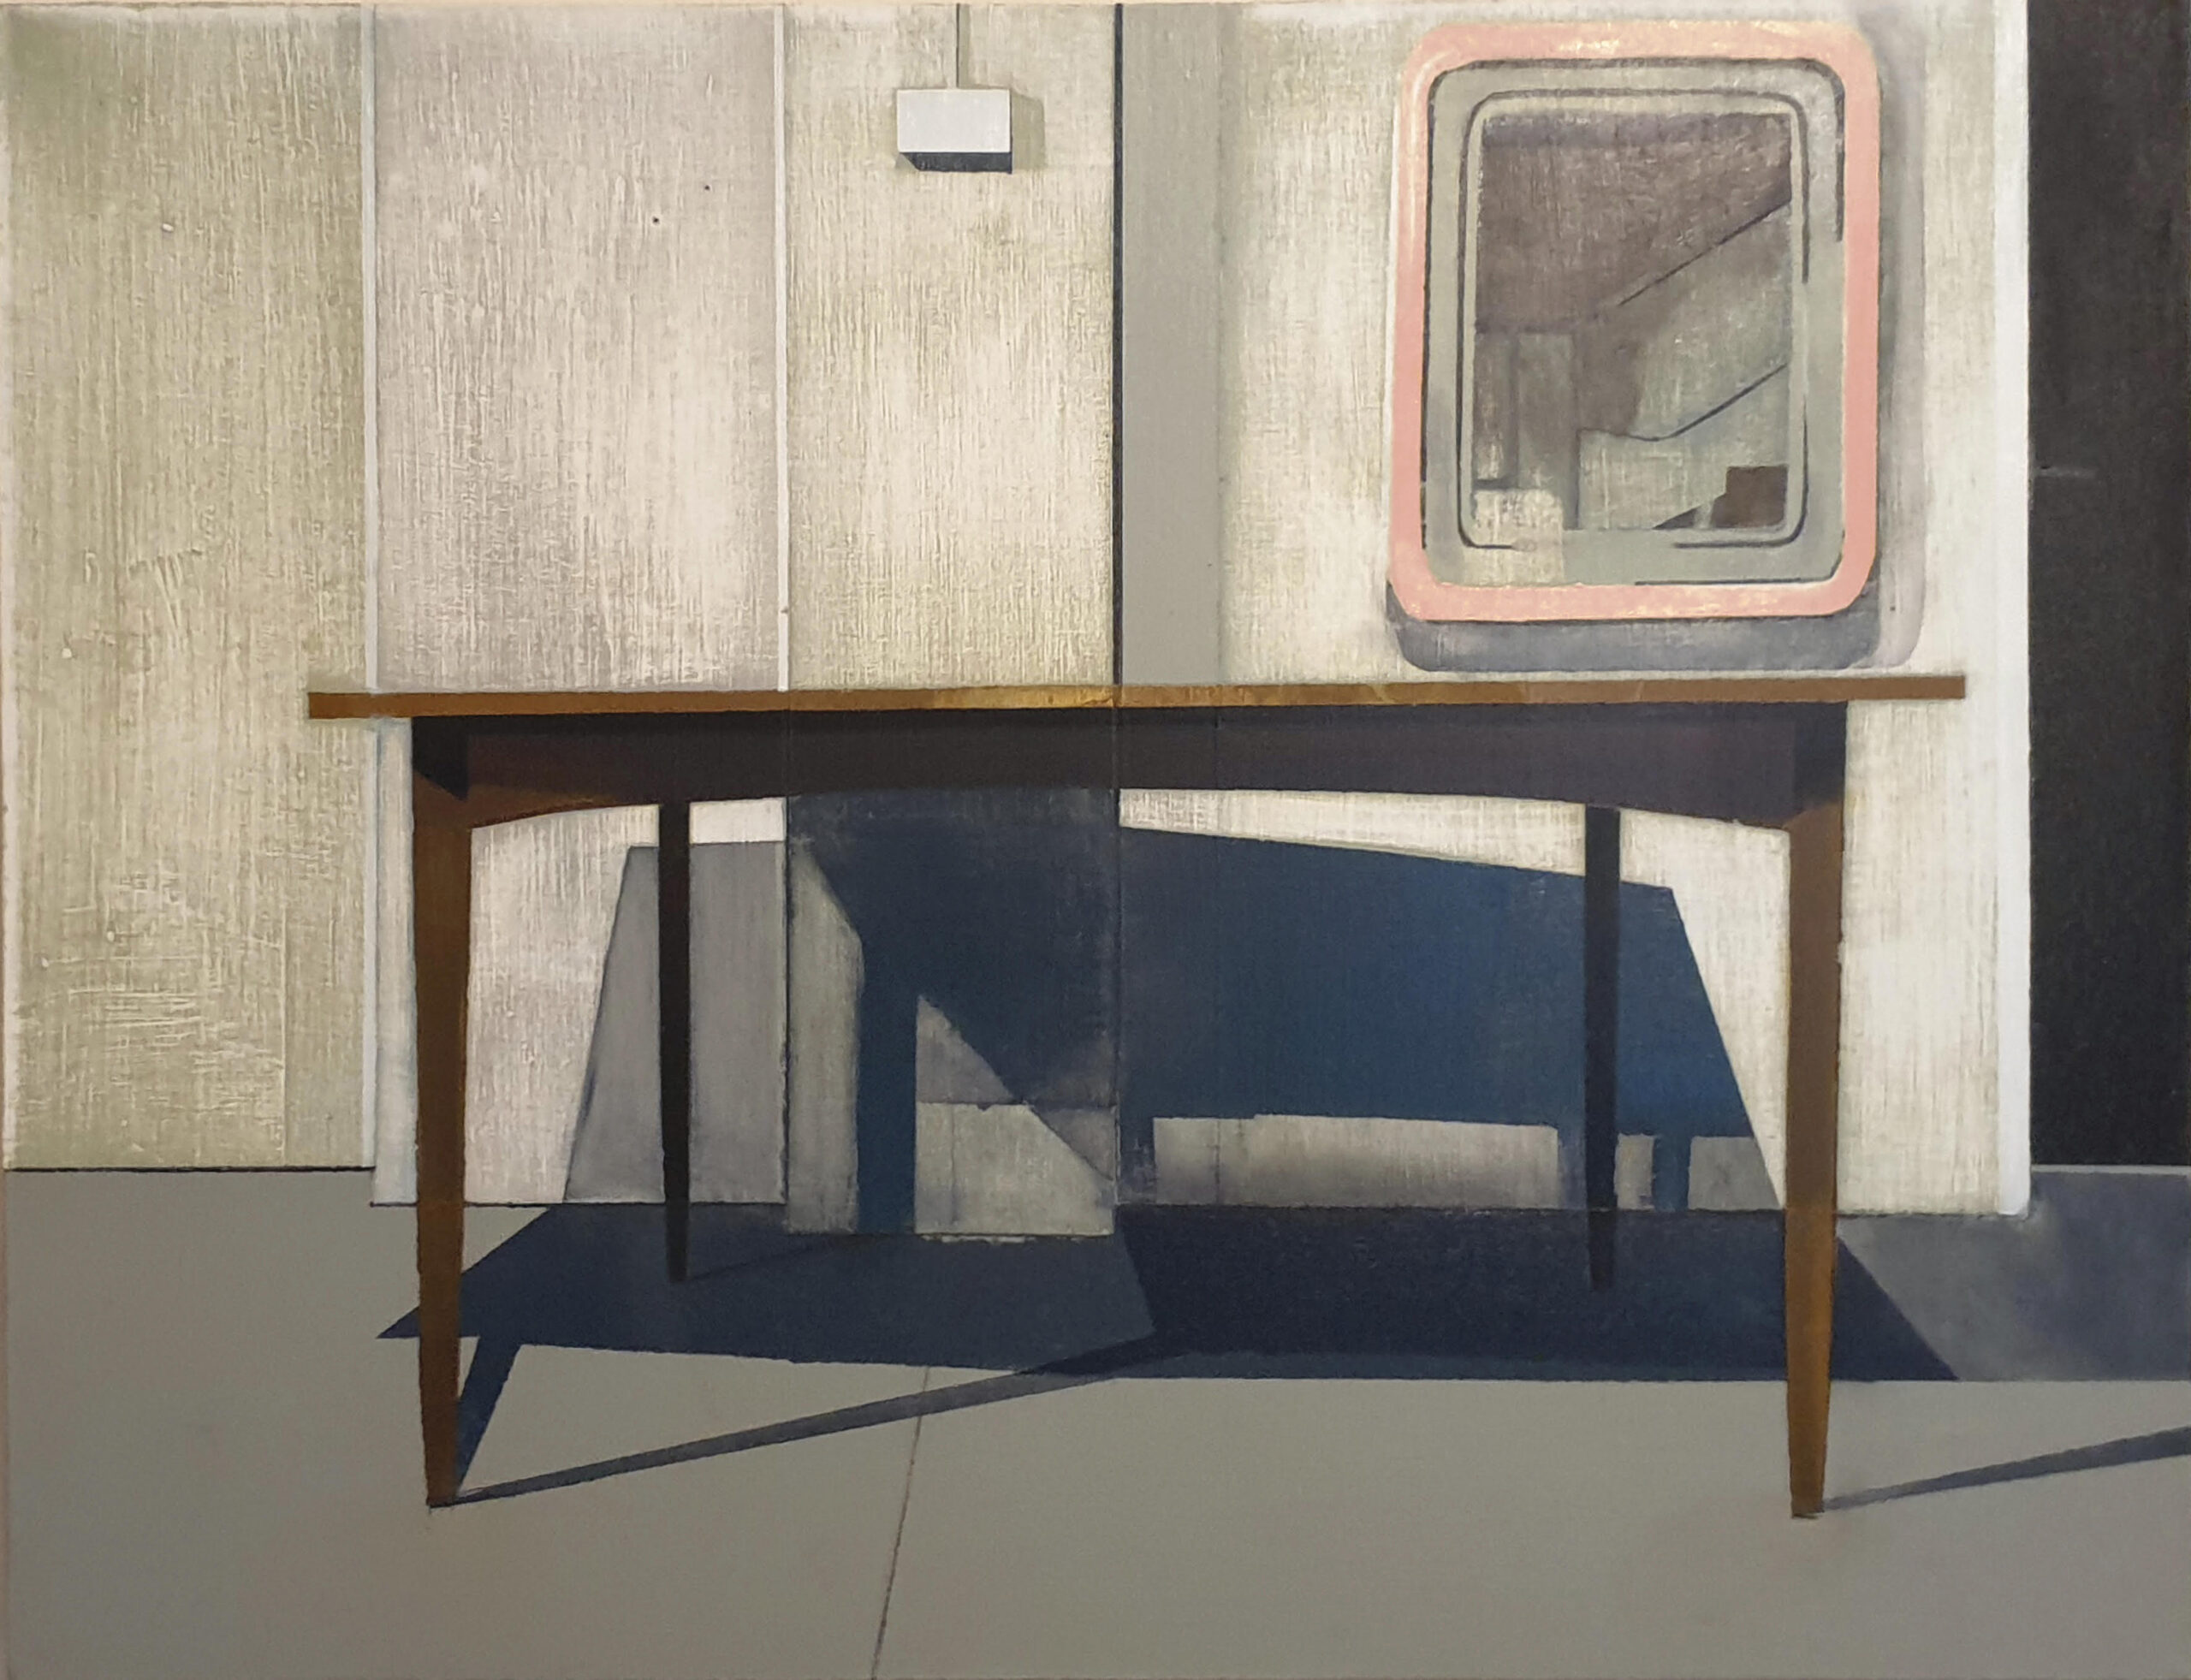 Dining Table with Mirror. Richard Baker. Jackson's Painting Prize.